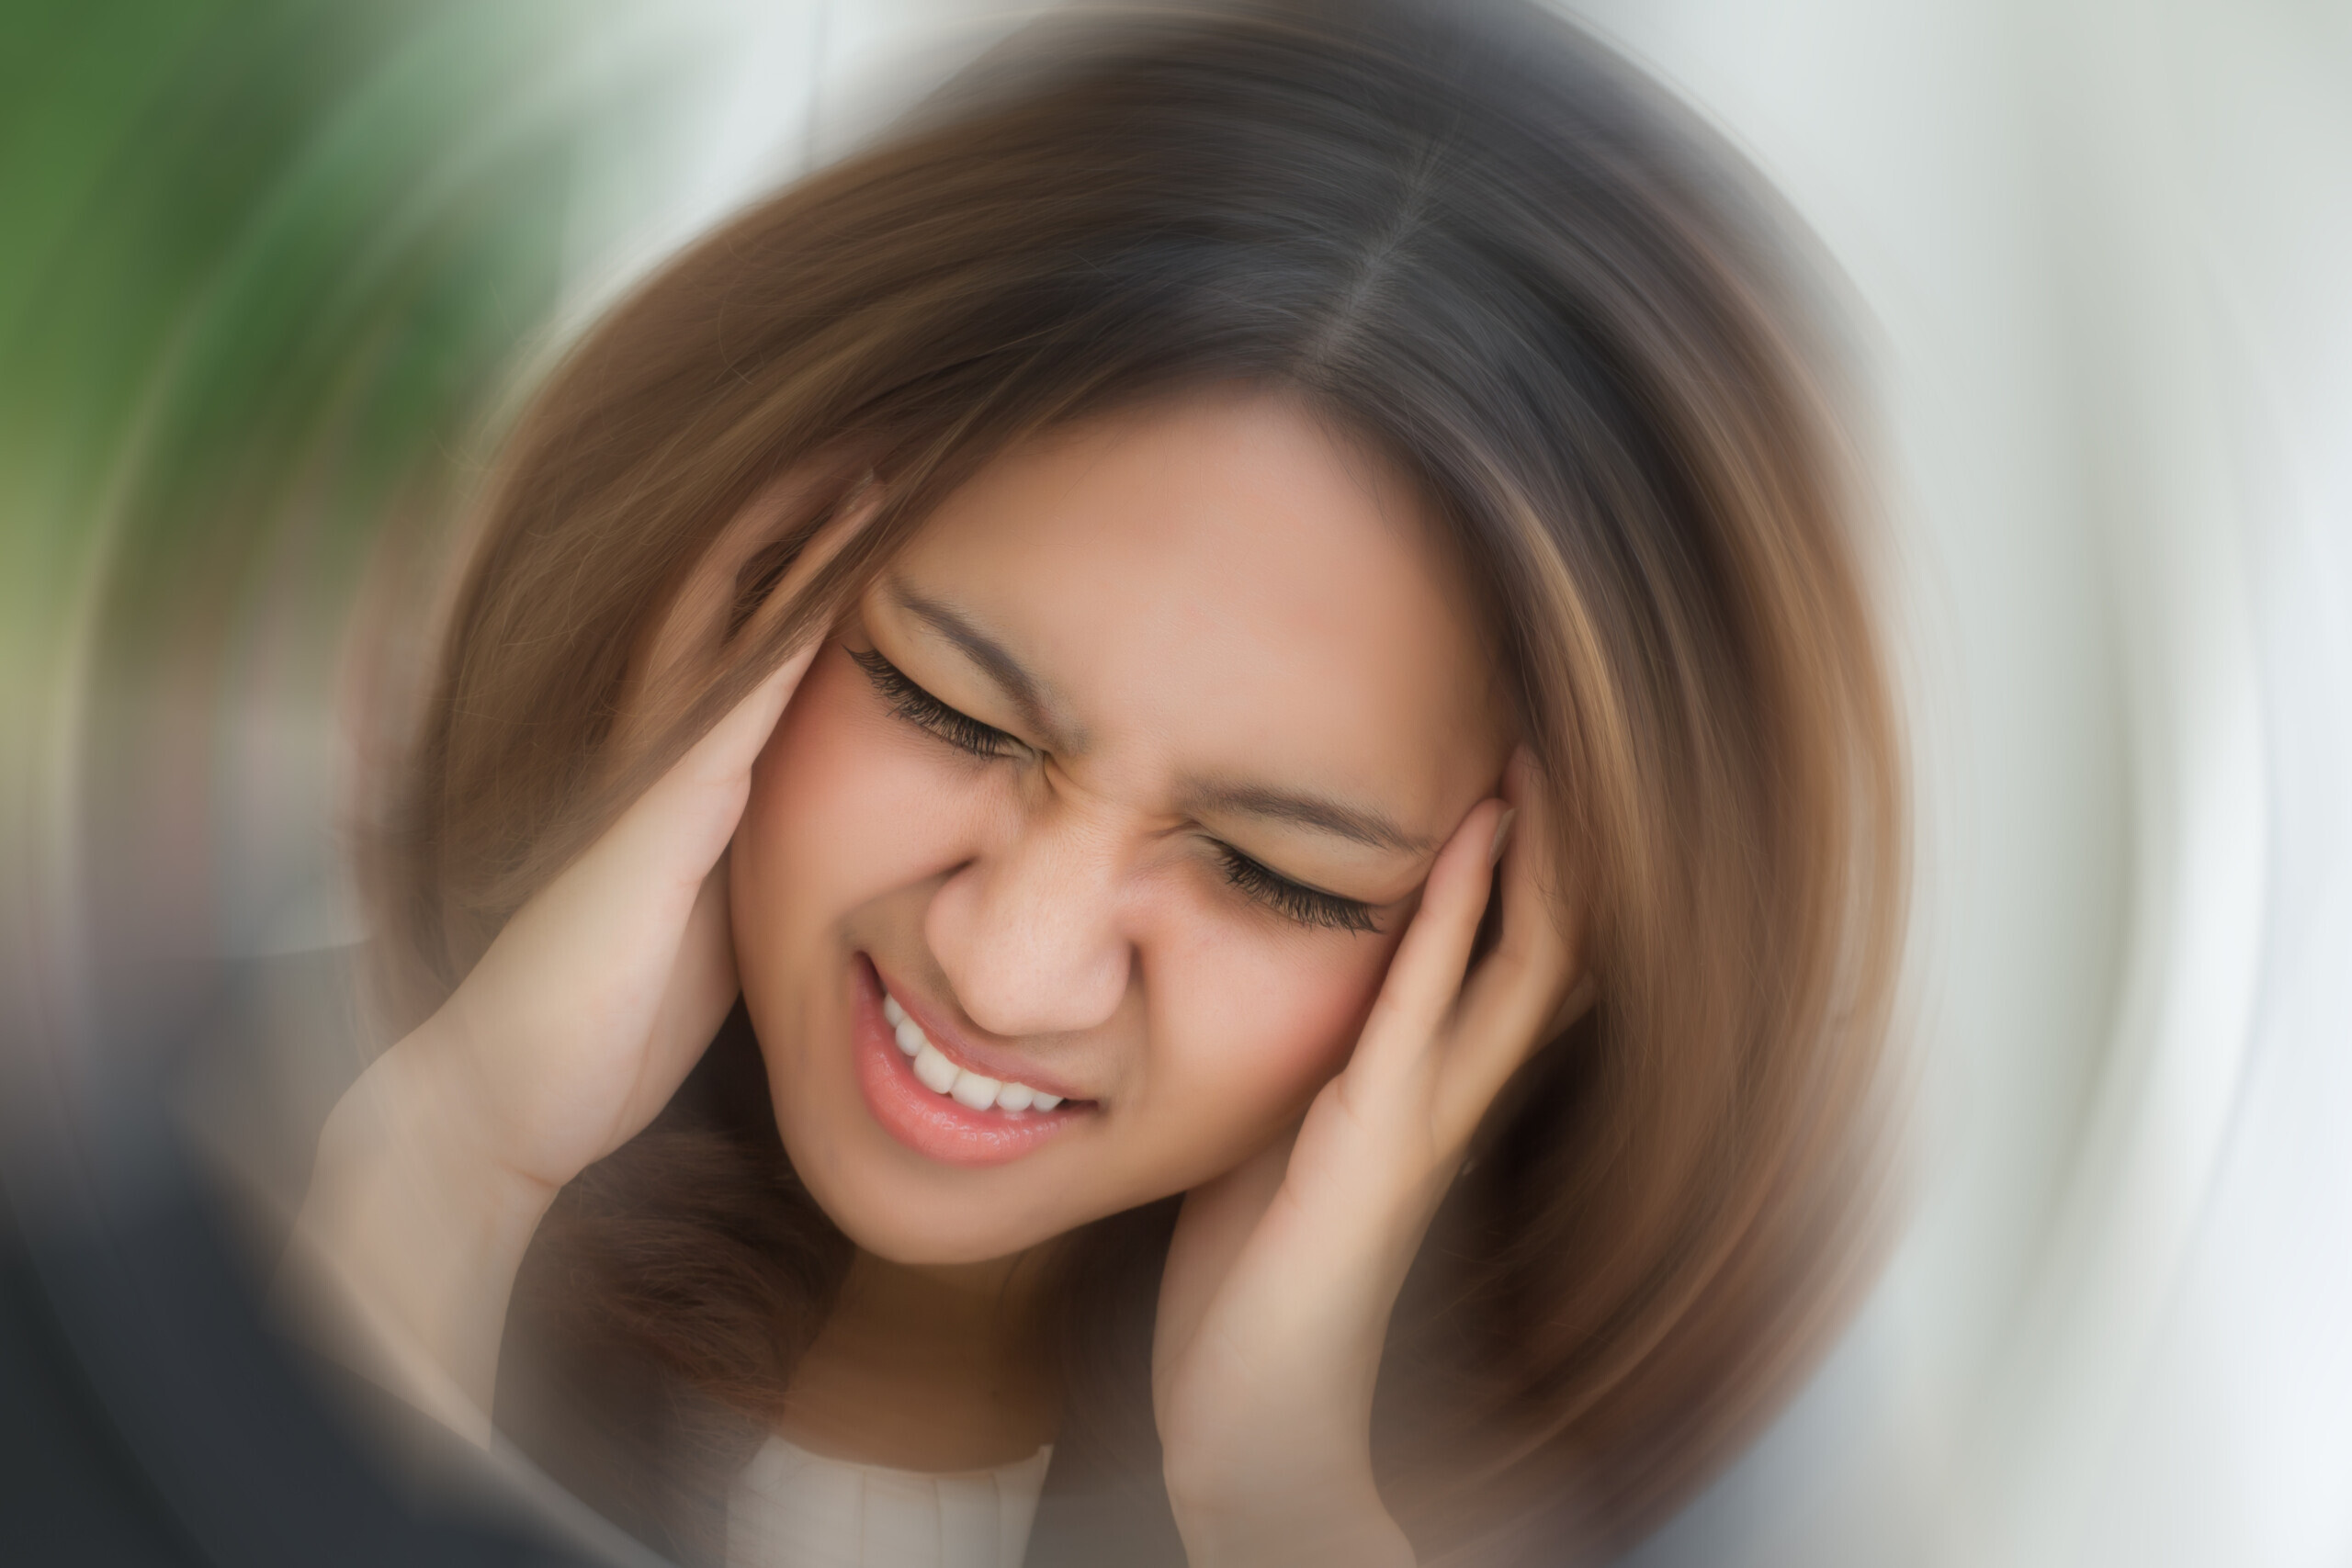 You Hit Head, Have Lingering Dizziness: What Should You Do?